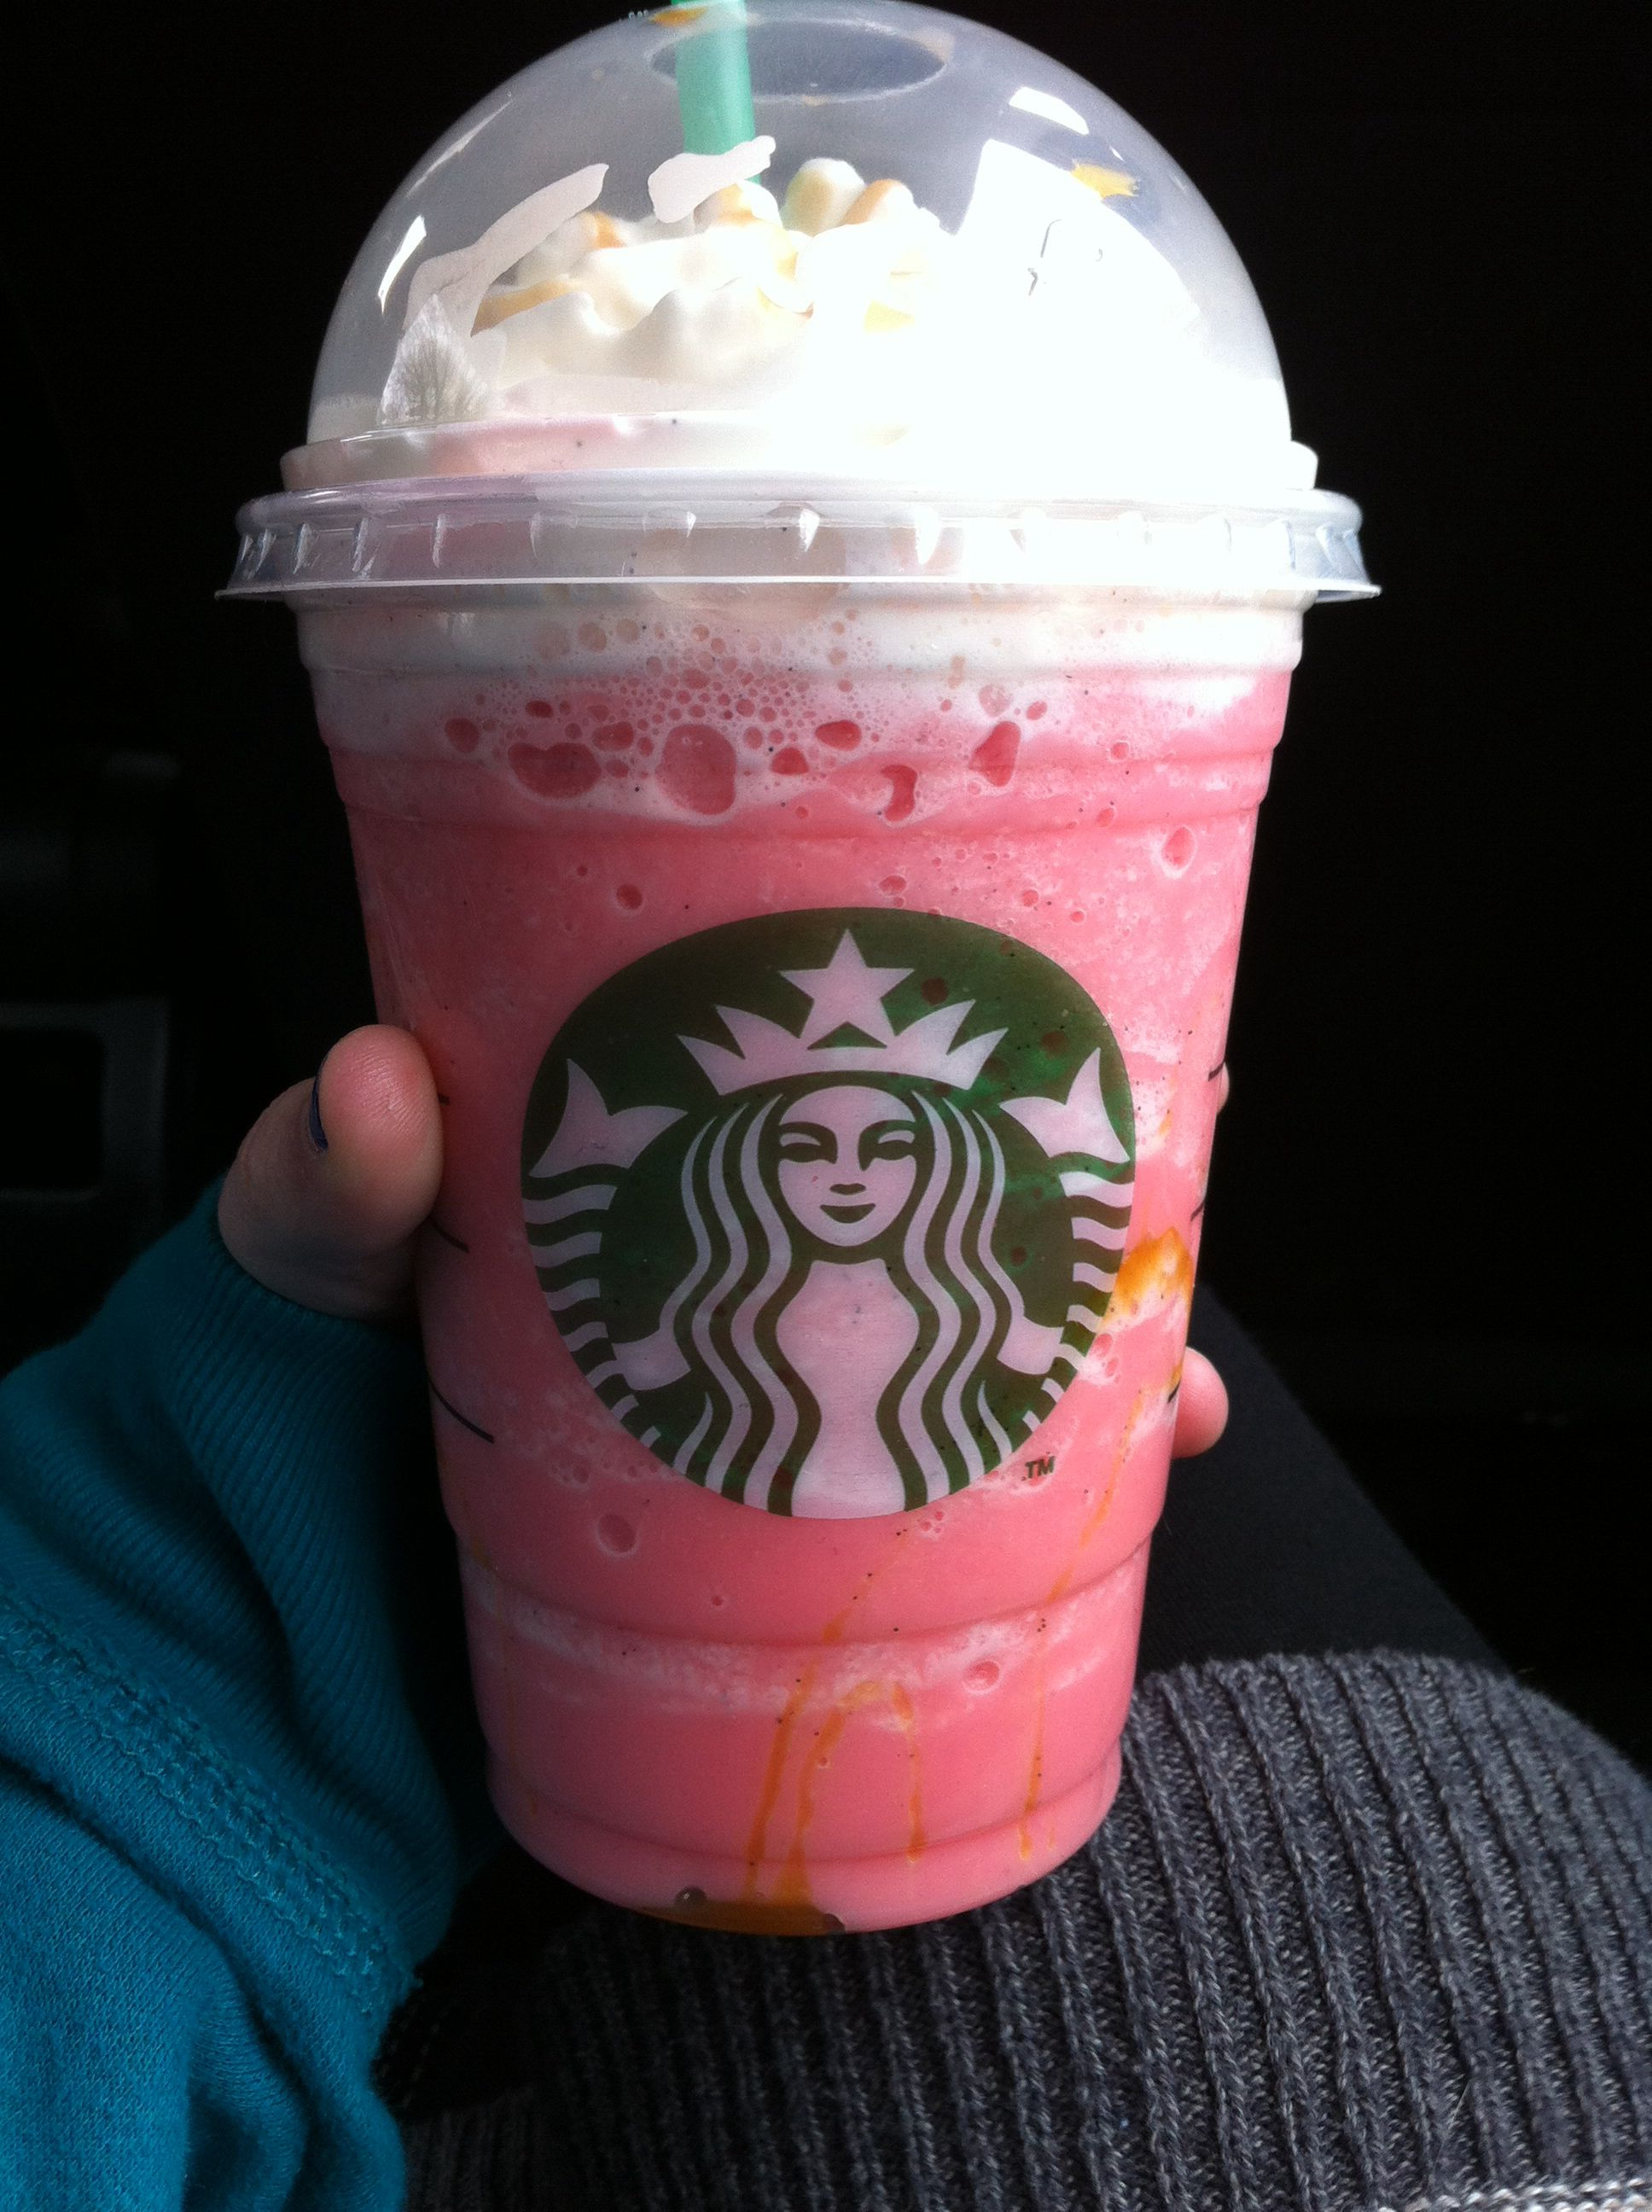 I Just Ordered A Cotton Candy Frappe At Starbucks It S Perfection Just Order A Vanilla Bean Frapp Starbucks Coffee Drinks Starbucks Drinks Healthy Starbucks